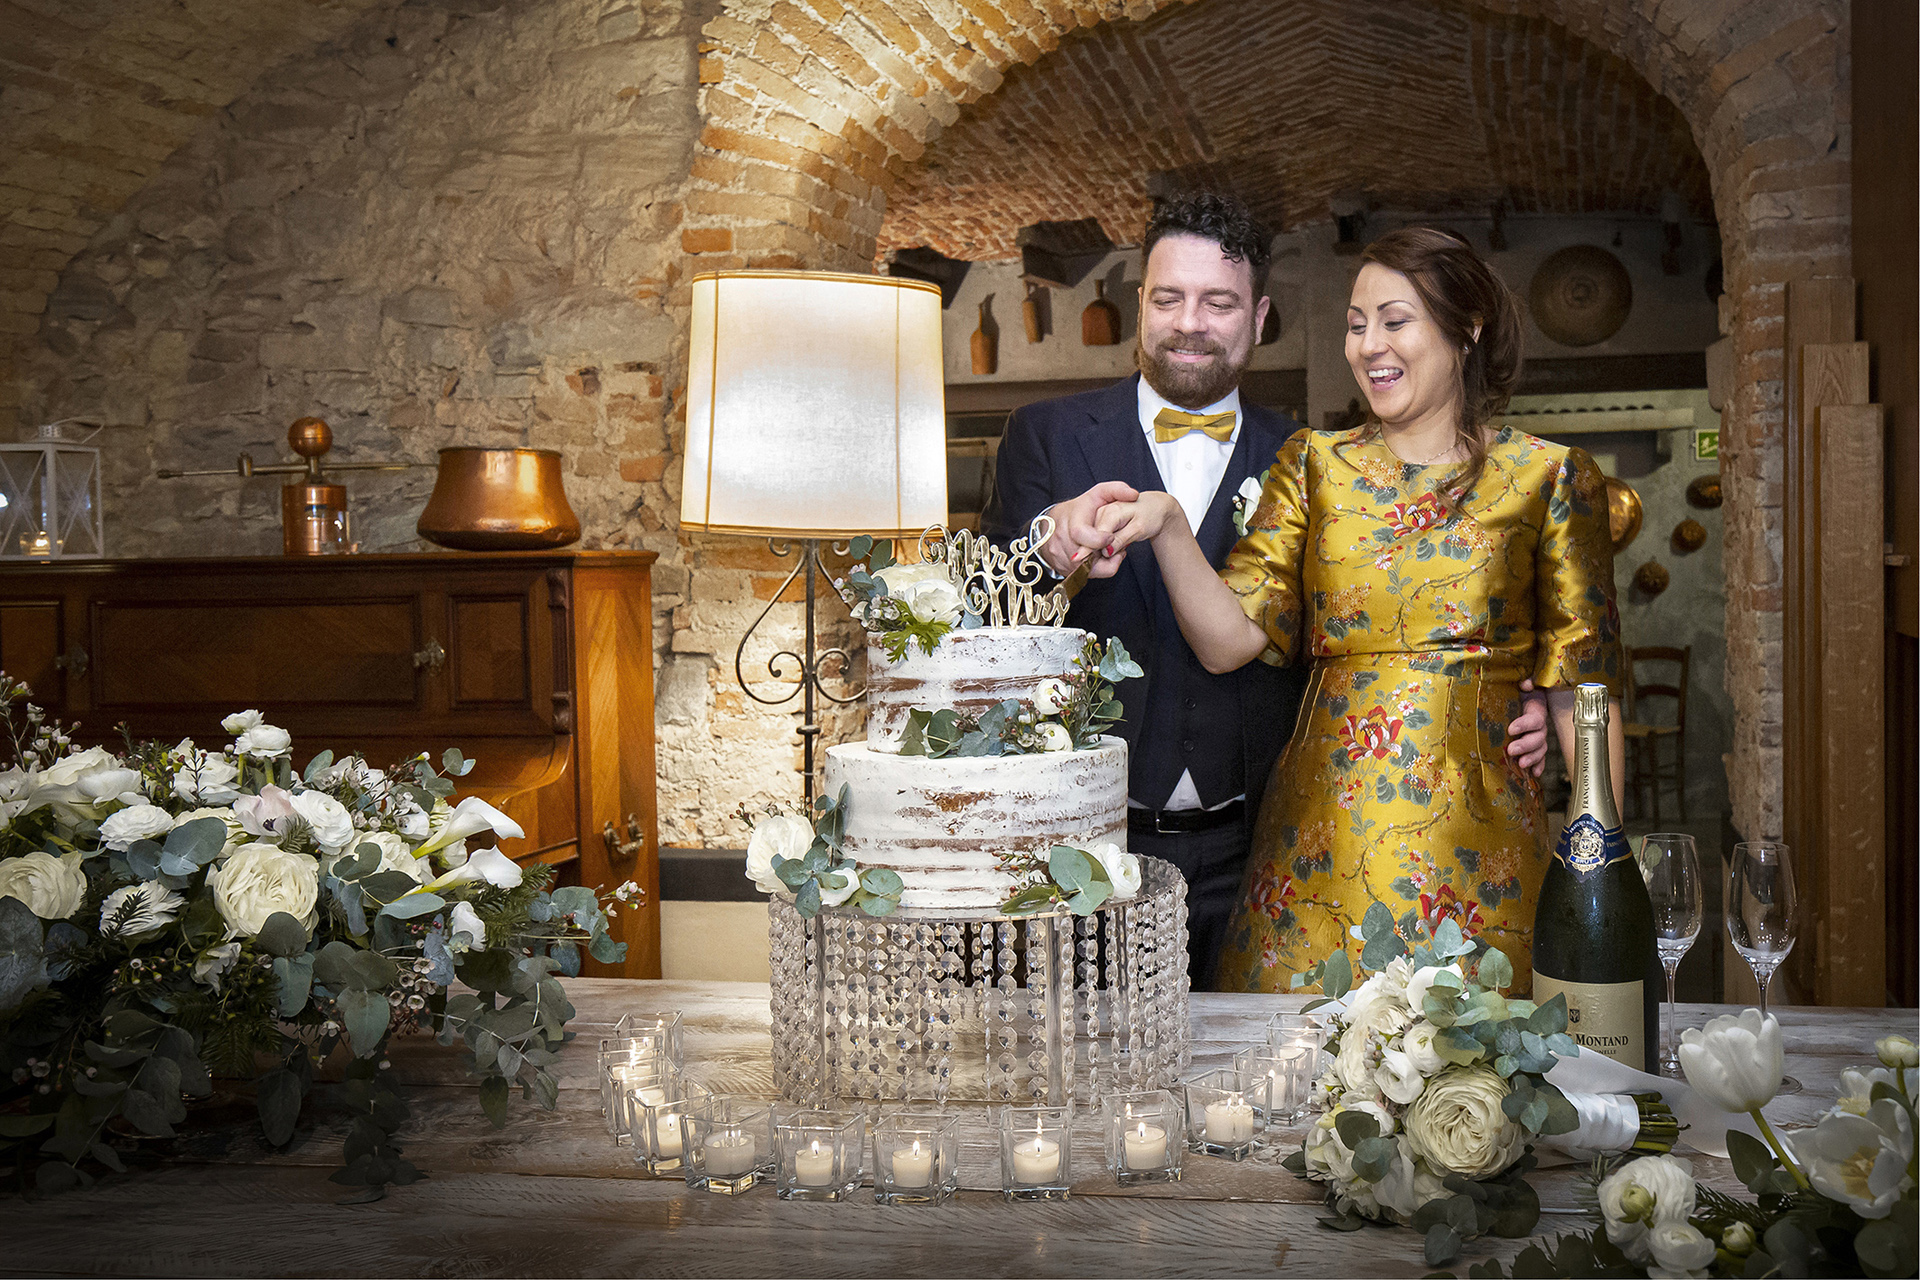 Italian Cellar Elopement Image from Villa Bossi | The reception is held below the Villa Bossi in a traditional and rustic Italian cellar